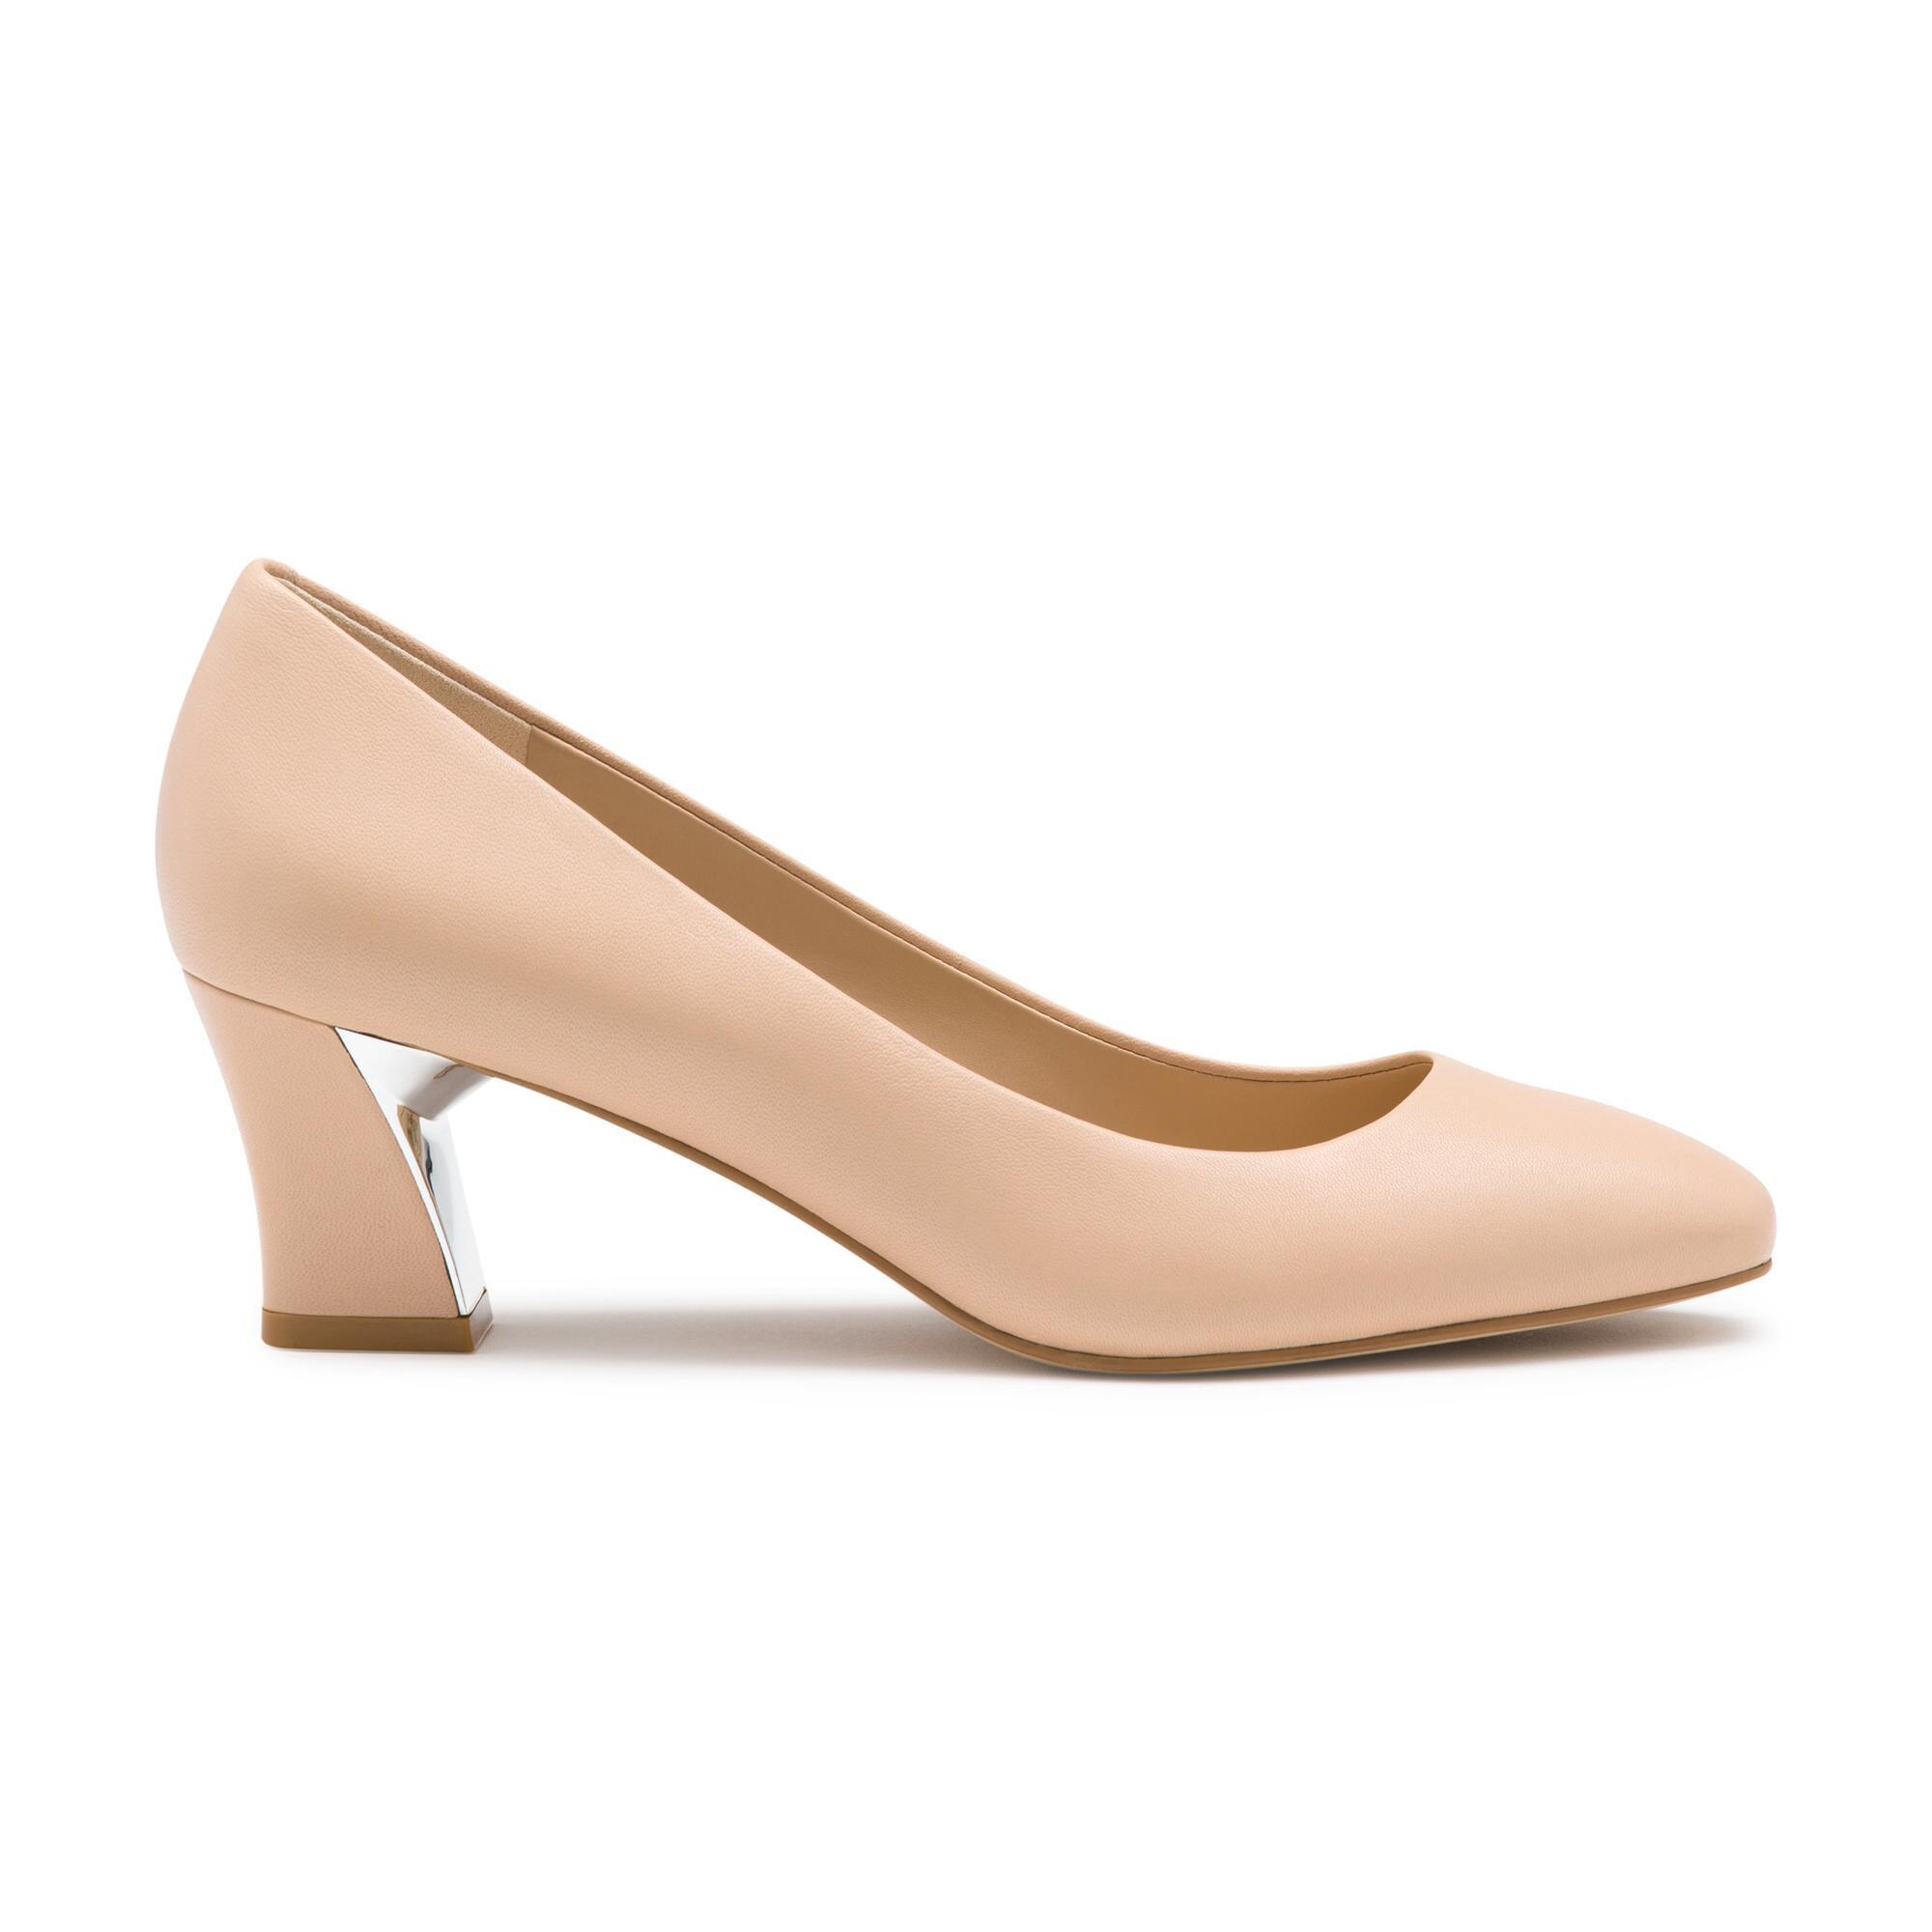 e01afbc6371 Lyst - Karl Lagerfeld Andrea Round Toe Pumps in Natural - Save 36%